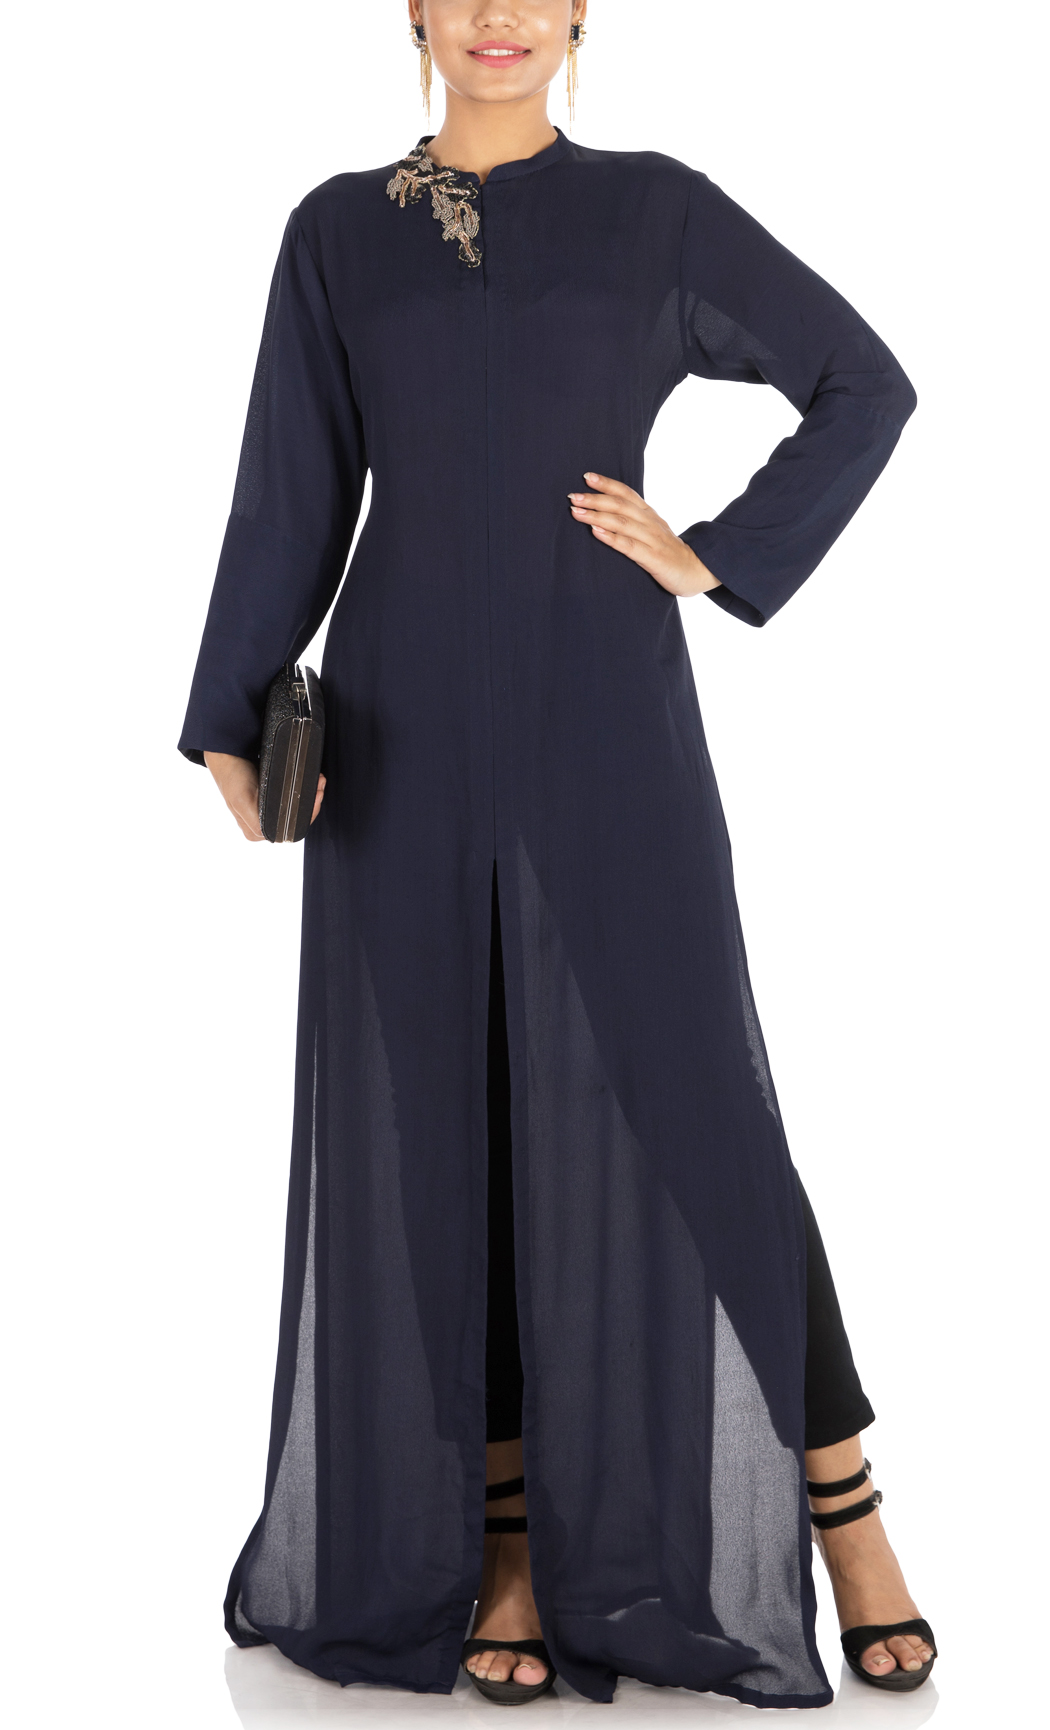 Midnight Blue Embroidered Tunic - Buy Online